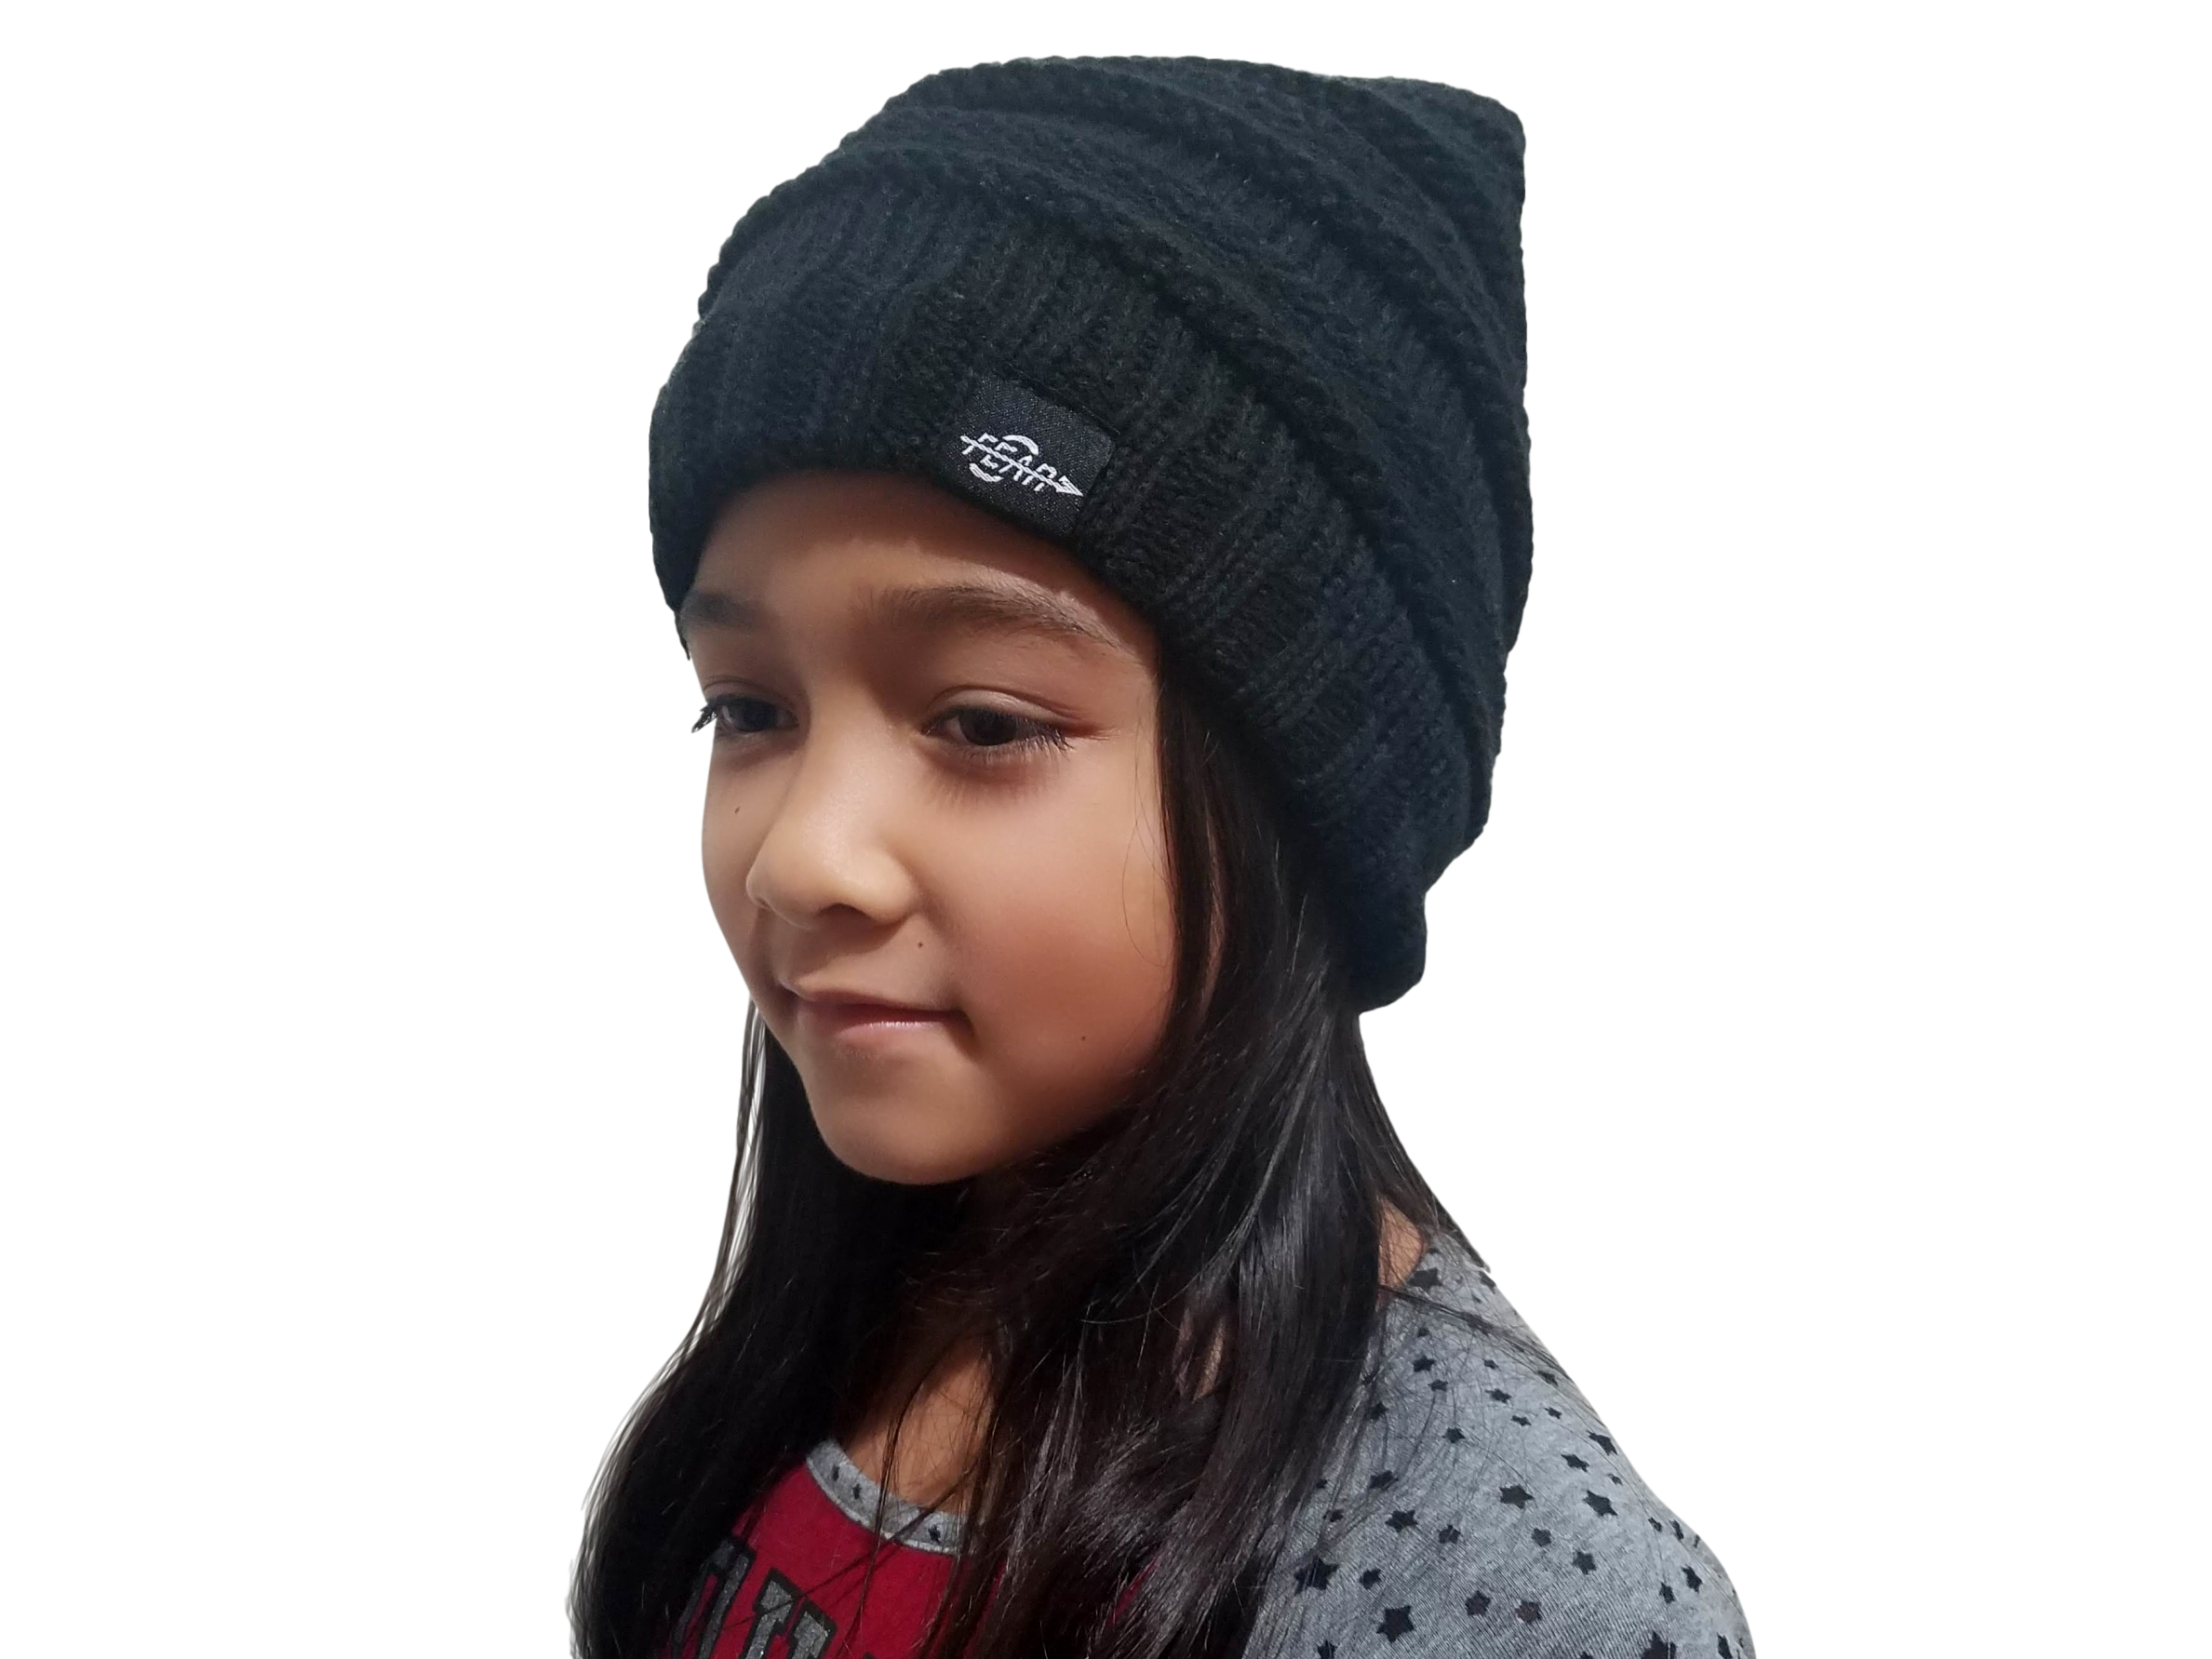 FEAR0 PLUSH INSULATED EXTREME COLD GEAR BLACK KNIT POM BEANIE HAT FOR KIDS - Fear0